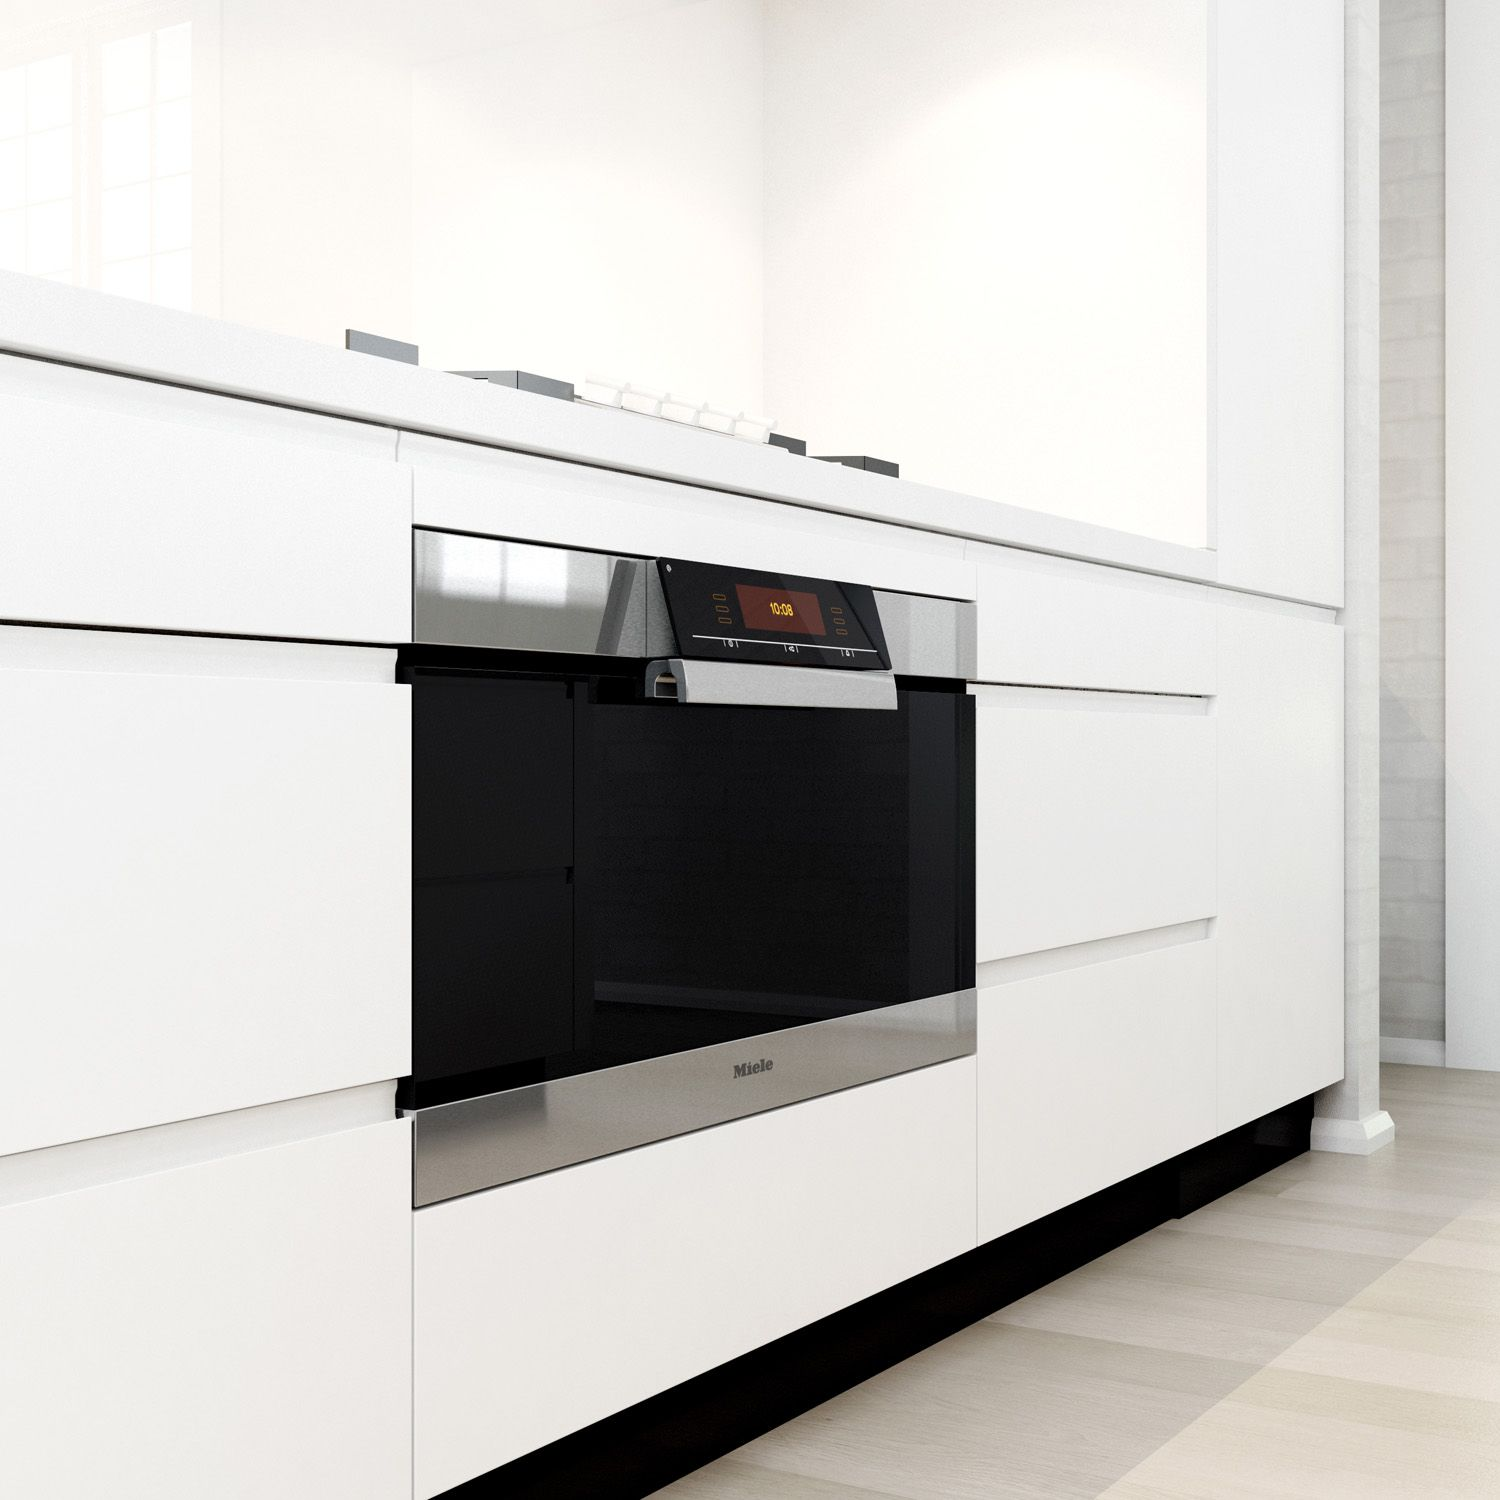 miele 90cm oven h 5981 bp it 39 s been available in a australia for a few years now it 39 s. Black Bedroom Furniture Sets. Home Design Ideas